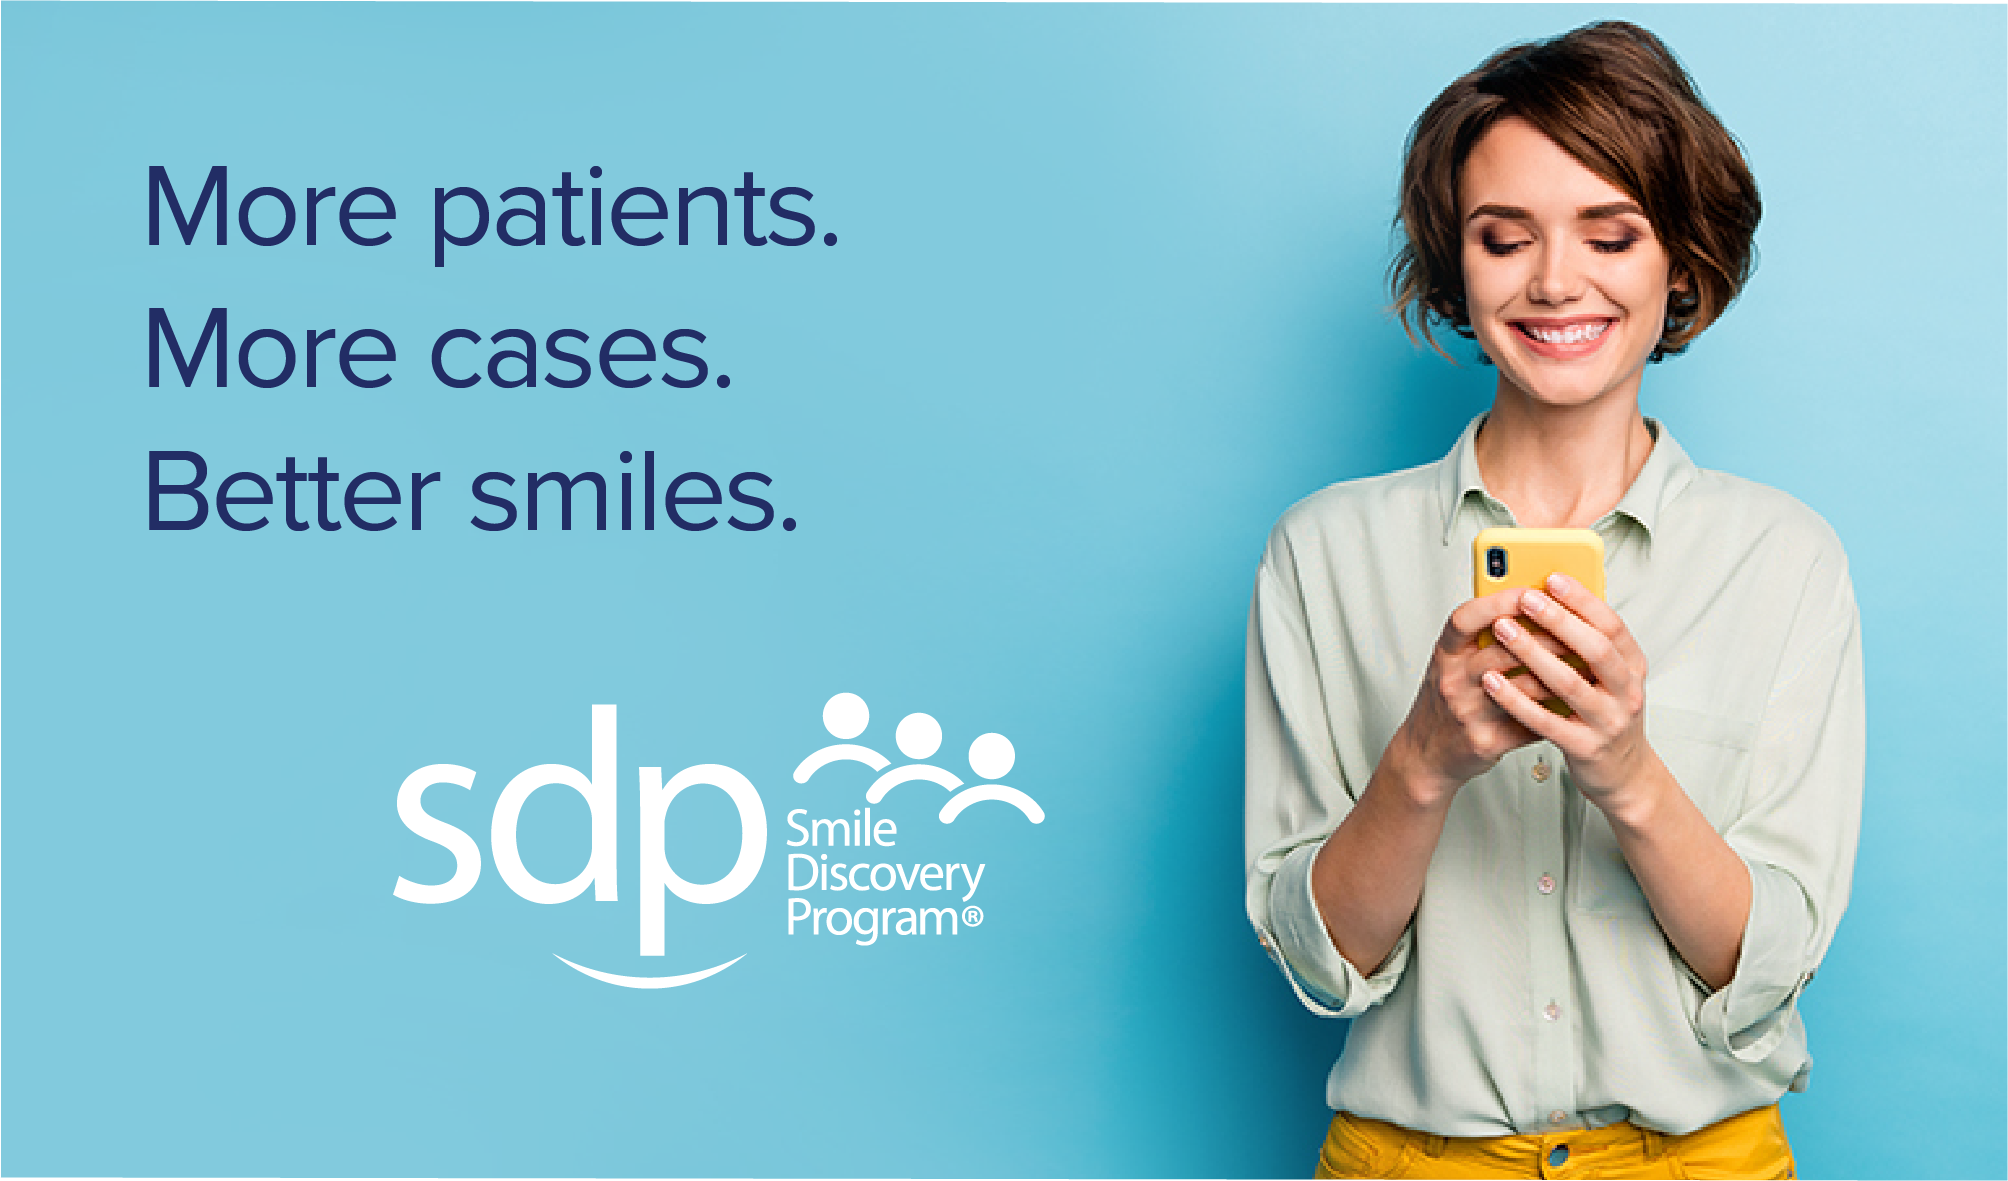 DENMAT LAUNCHES NEW SMILE DISCOVERY PROGRAM®, A UNIQUE MARKETING PROGRAM THAT HELPS PRACTICES ACQUIRE NEW PATIENTS AND INCREASE CASE ACCEPTANCE